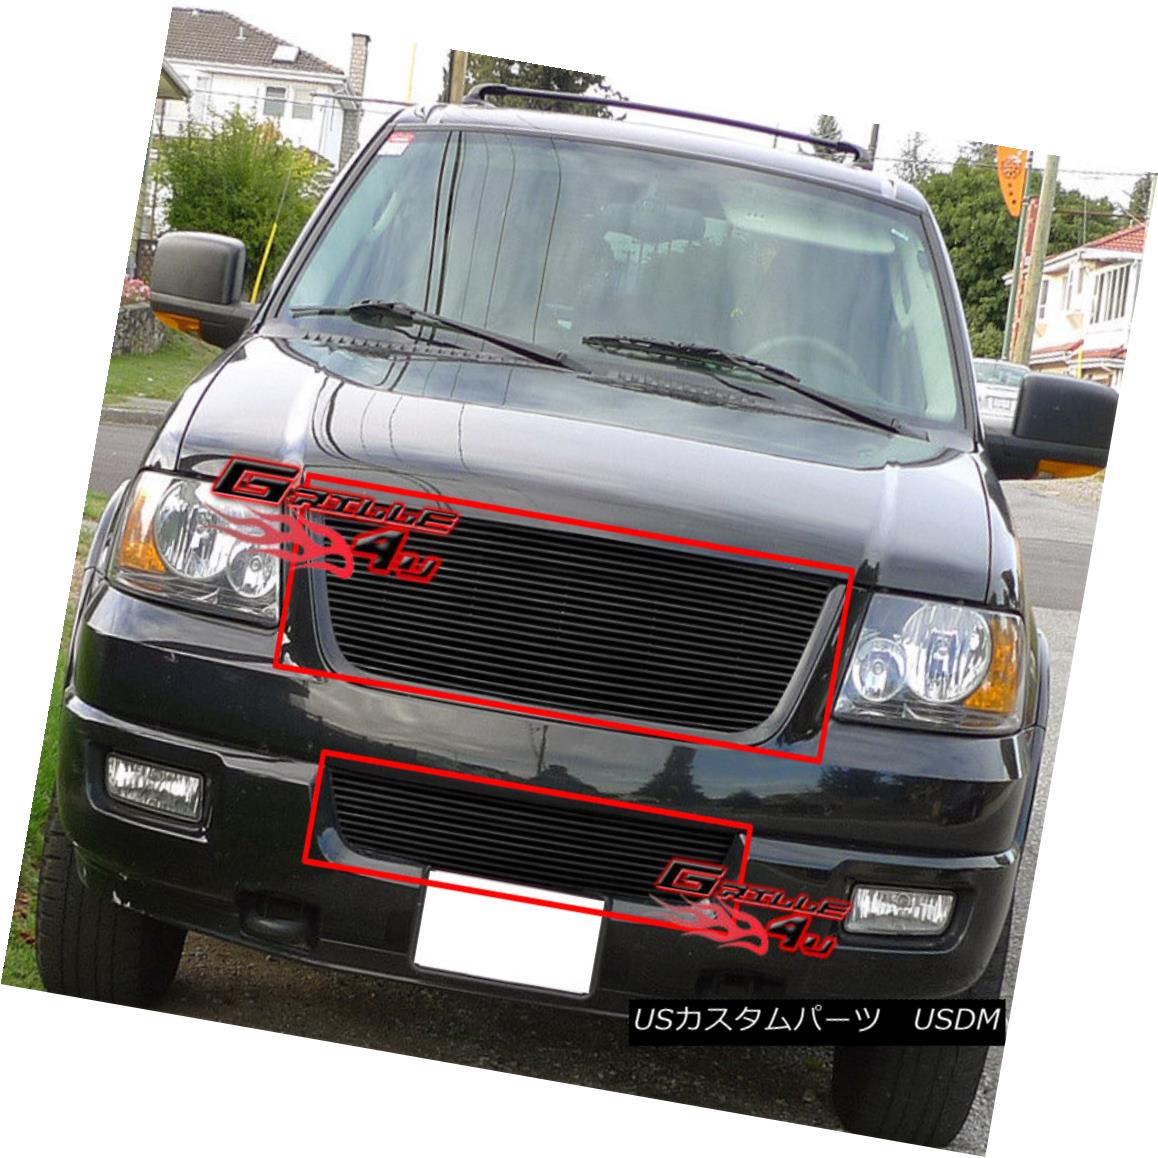 グリル For 03-06 Ford Expedition Black Billet Grille Combo Insert 03-06 For Ford Expeditionブラックビレットグリルコンボインサート